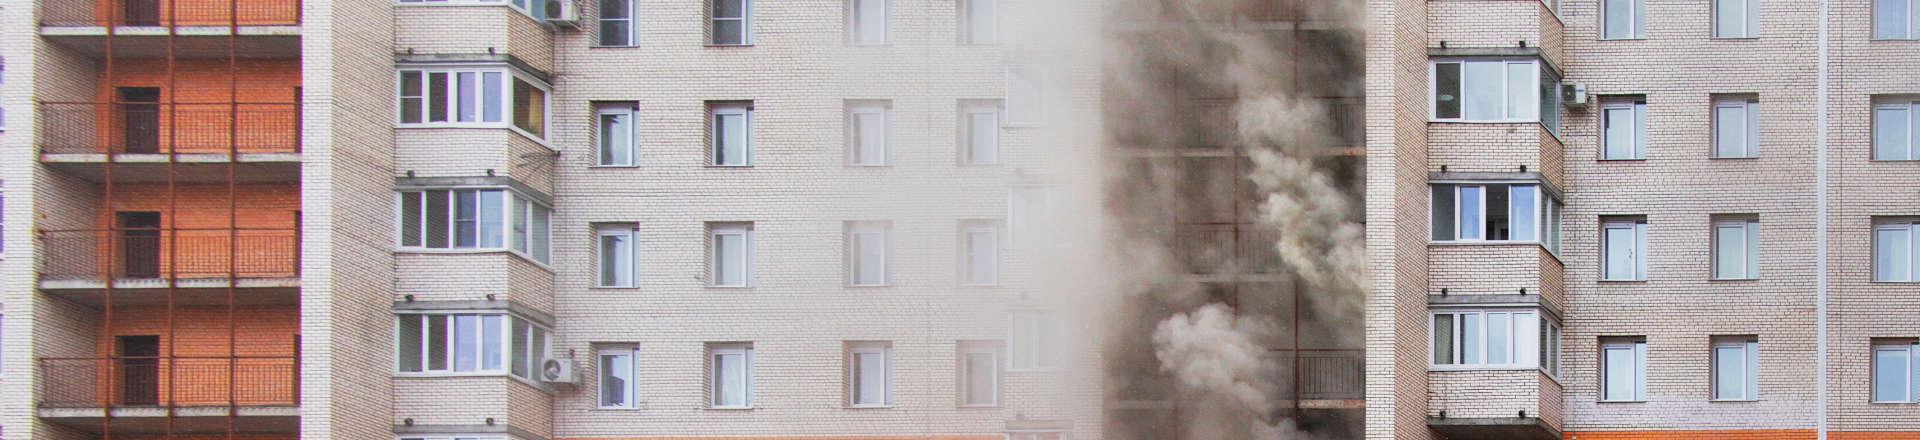 smoke coming out of an apartment building